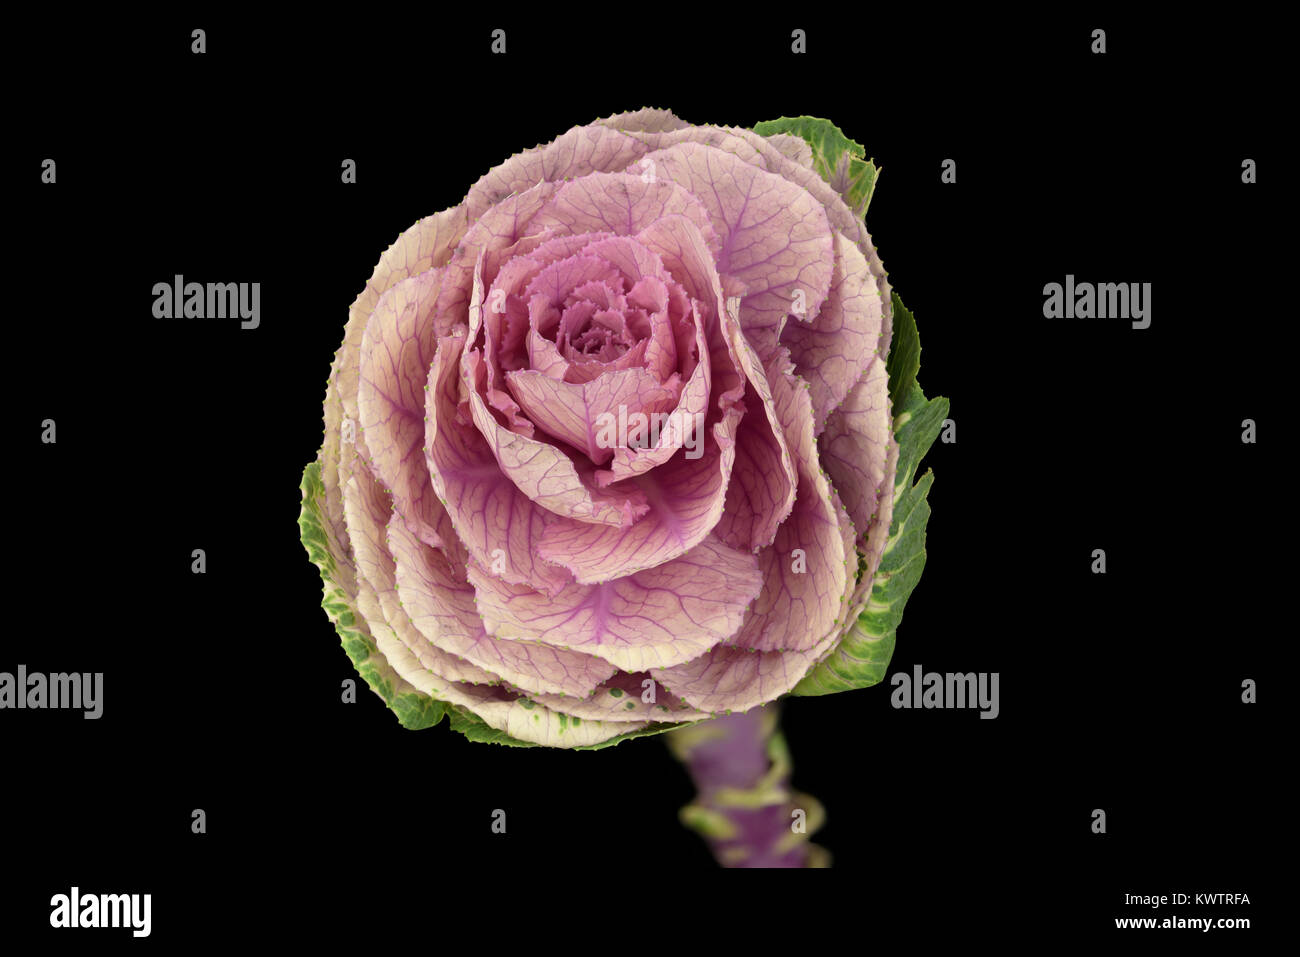 Closeup shot using focus stacking of a cabbage head as sold in a florist - Stock Image